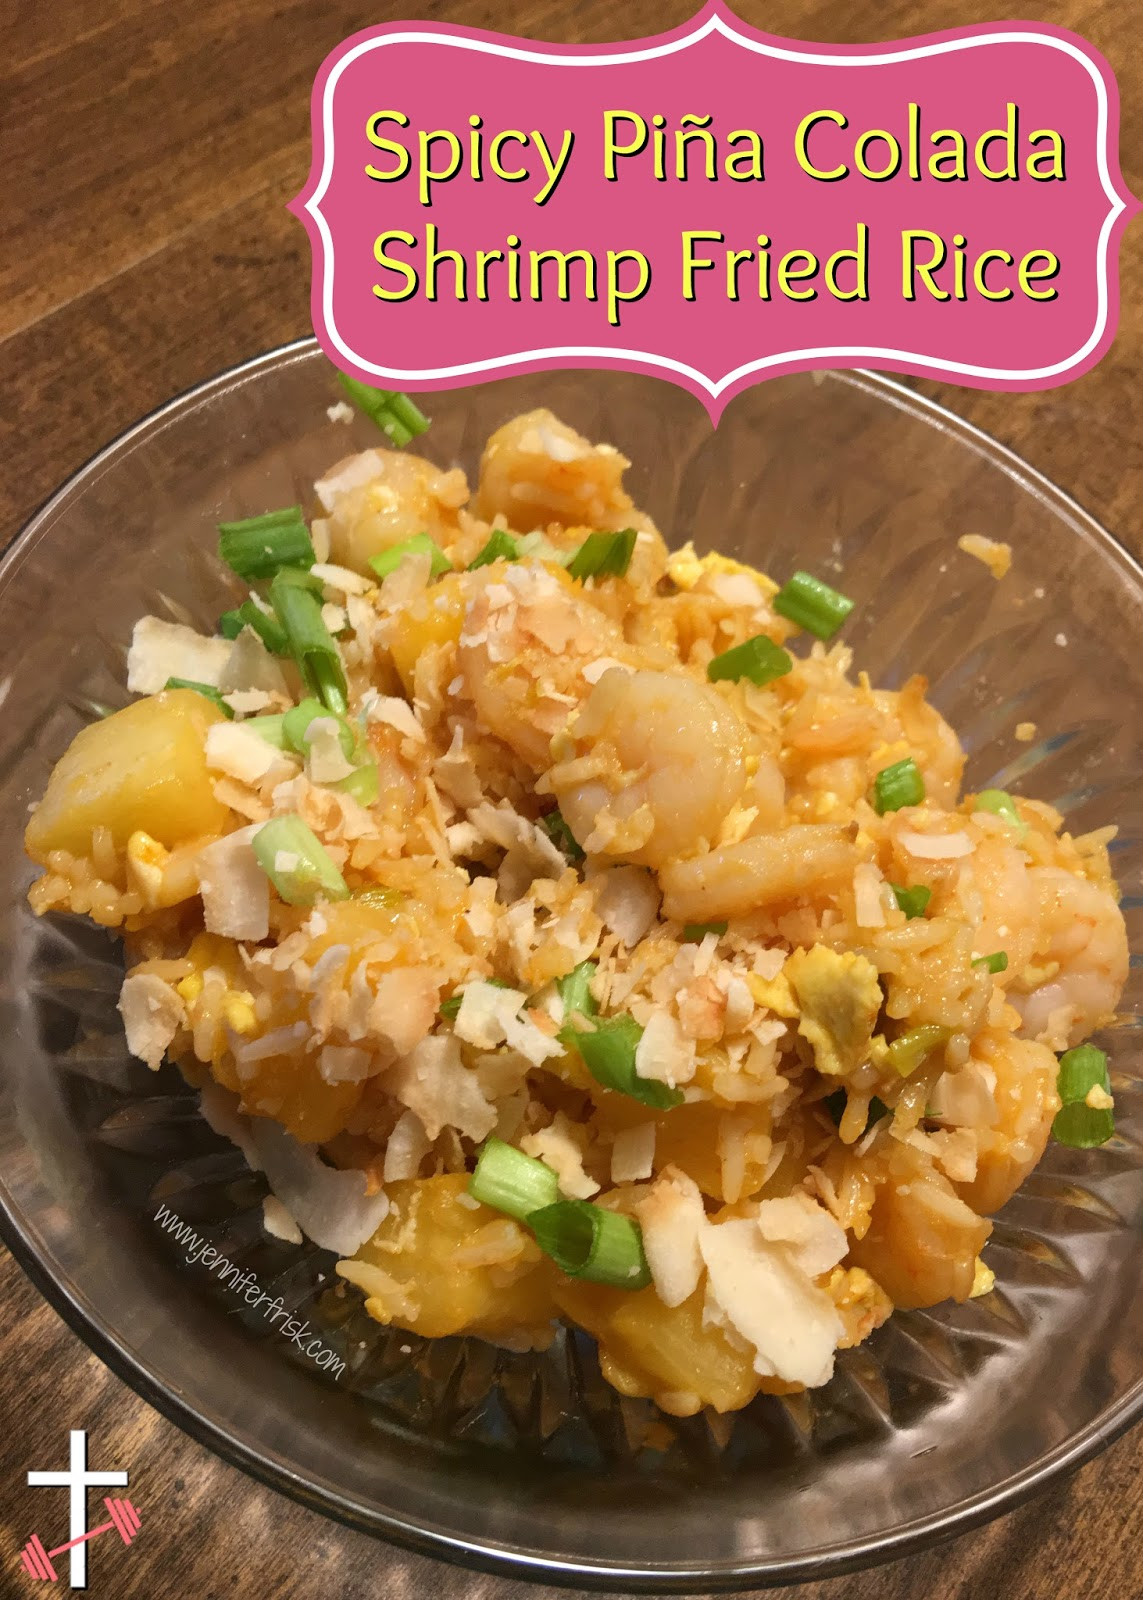 ... the Journey: Midweek Mealtime - Spicy Piña Colada Shrimp Fried Rice